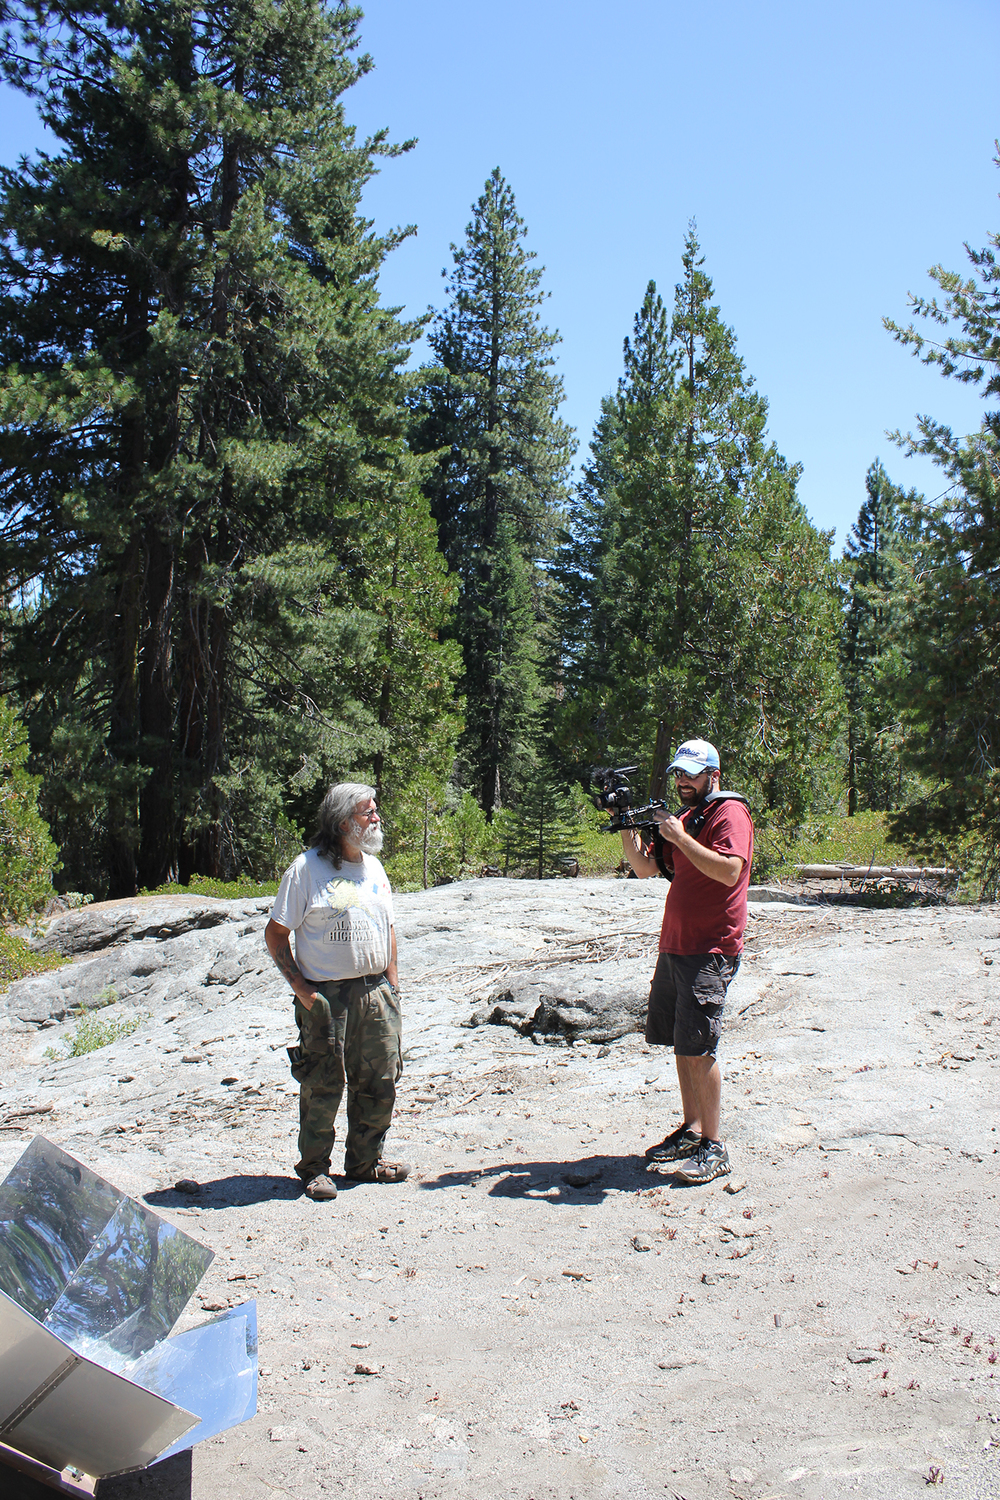 Me following Bob Wells. Sun Oven in the foreground. Sierra National Forest August 2012